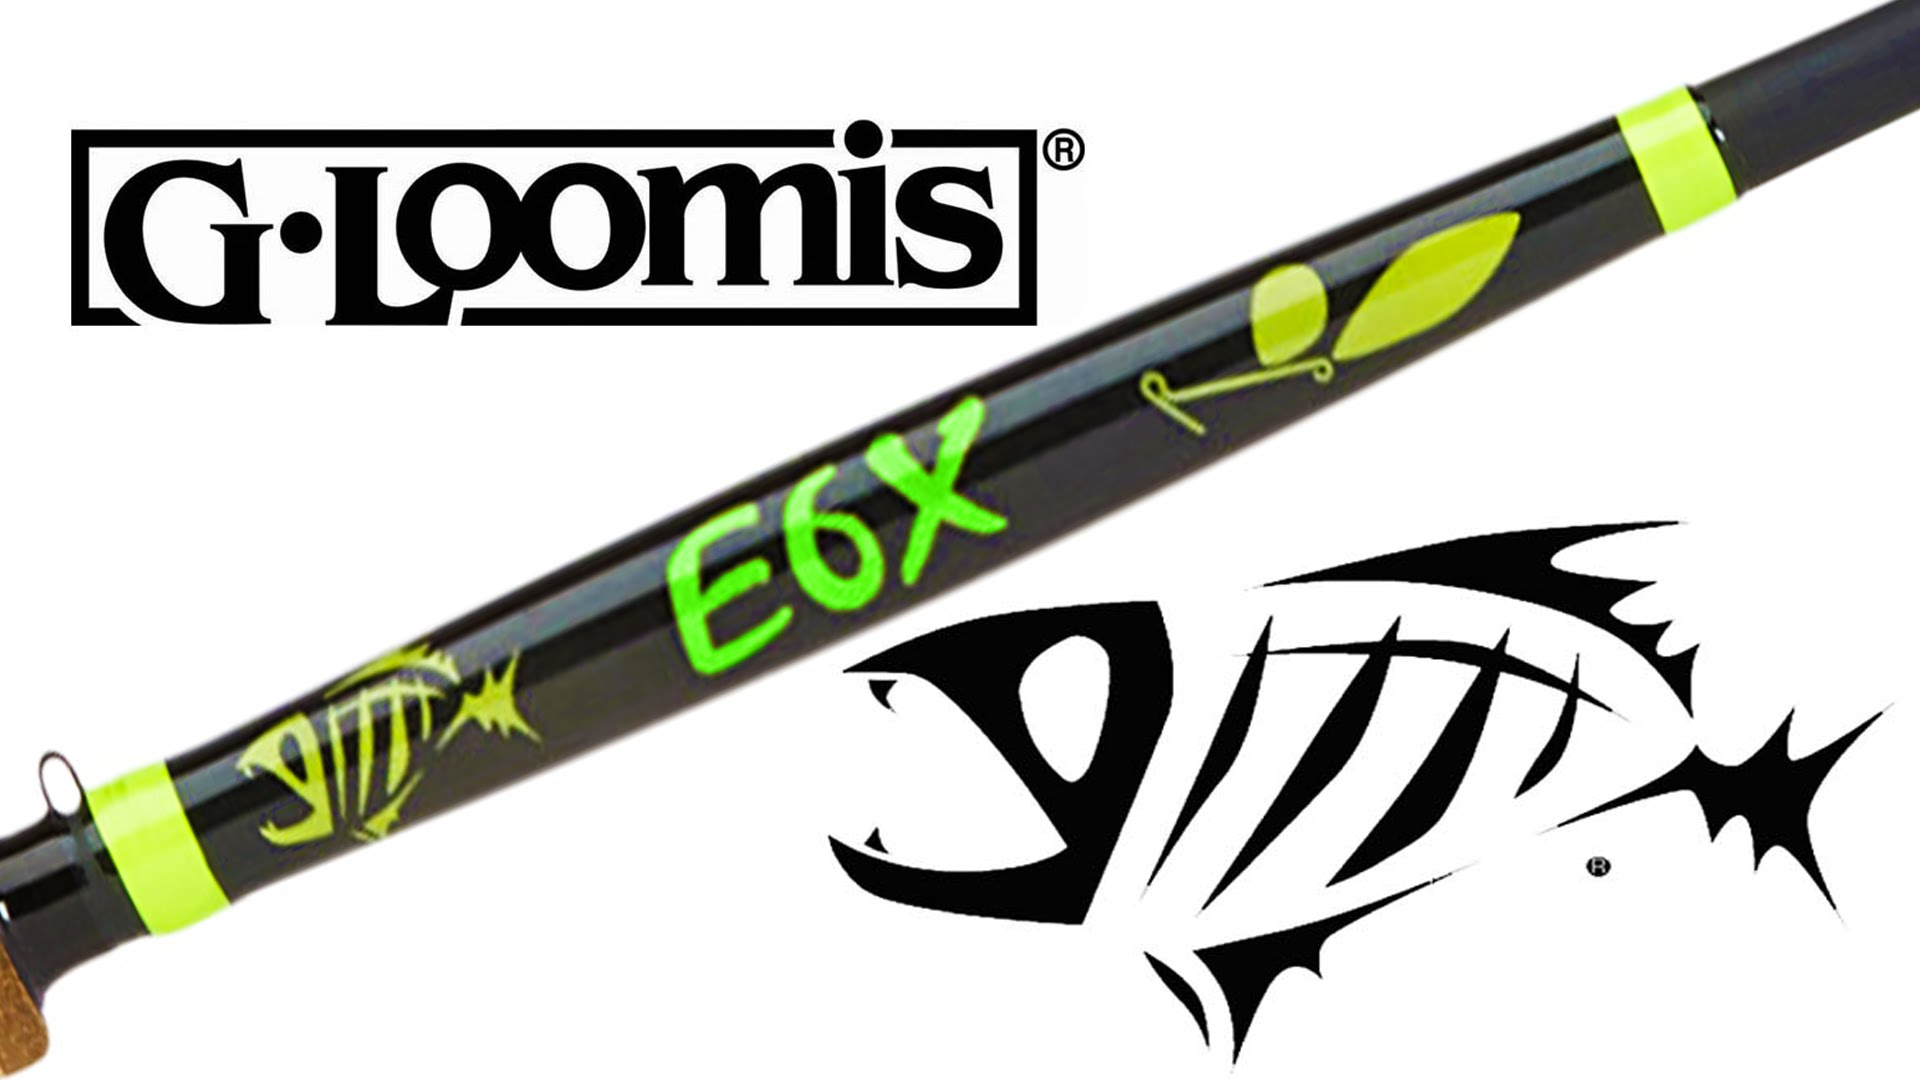 G loomis e6x inshore casting rod for G loomis fish